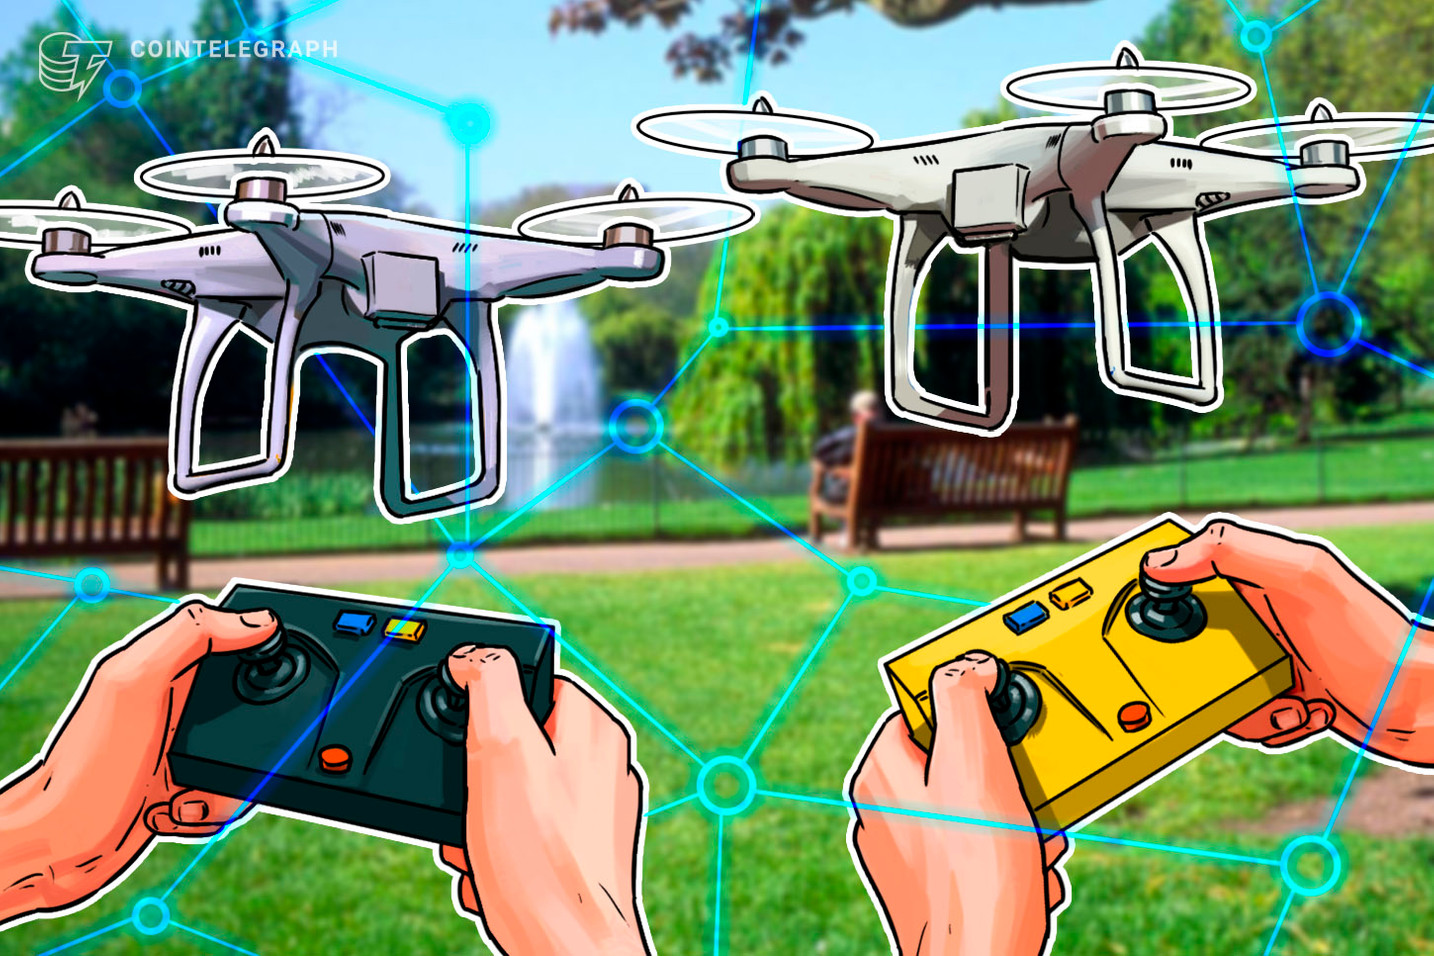 IBM Files Blockchain Patent to Tackle Privacy and Security Concerns for Drones